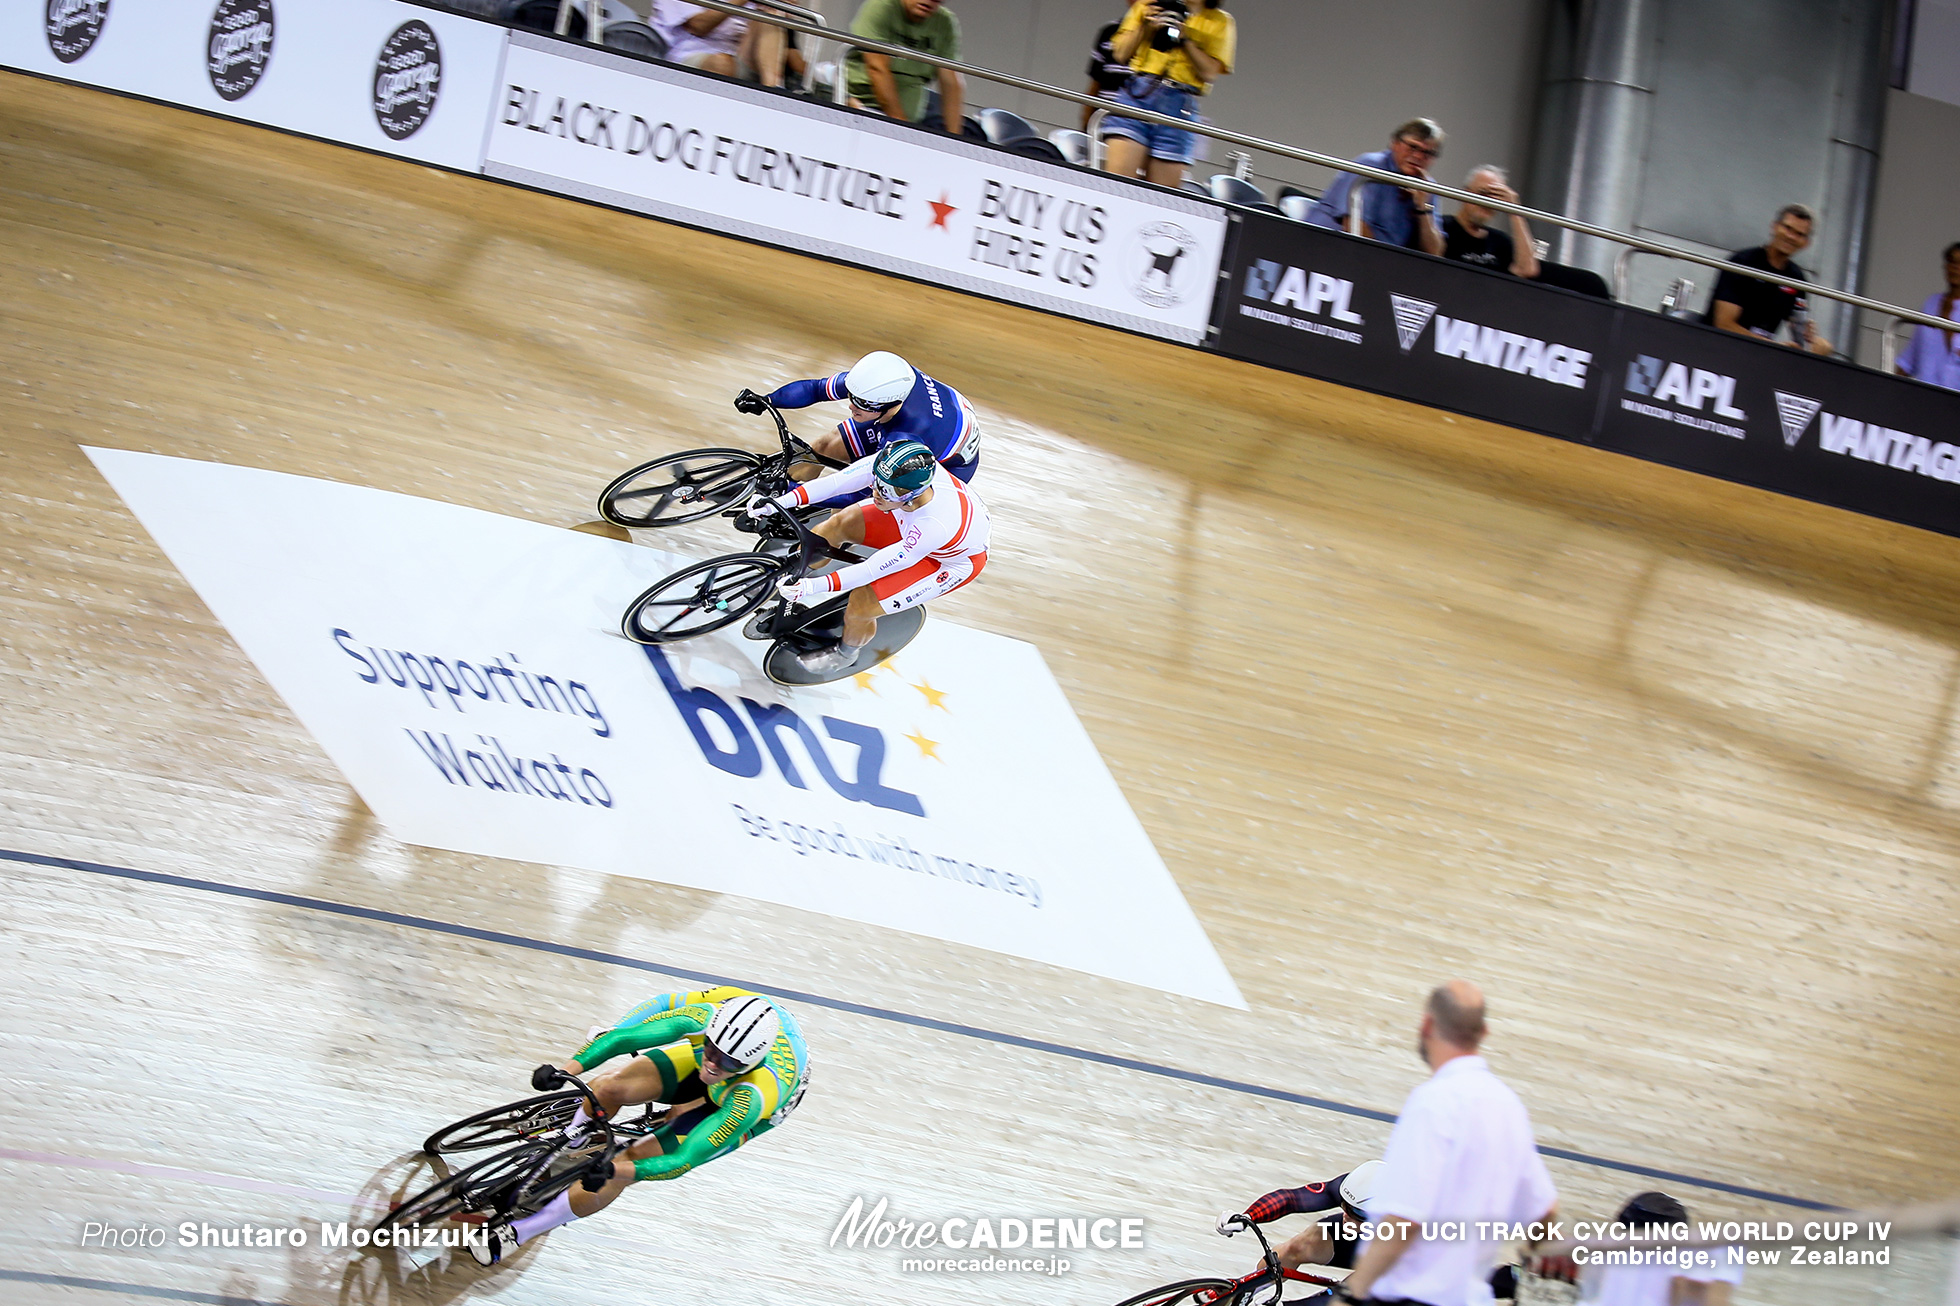 1st Round Repechage / Men's Keirin / TISSOT UCI TRACK CYCLING WORLD CUP IV, Cambridge, New Zealand